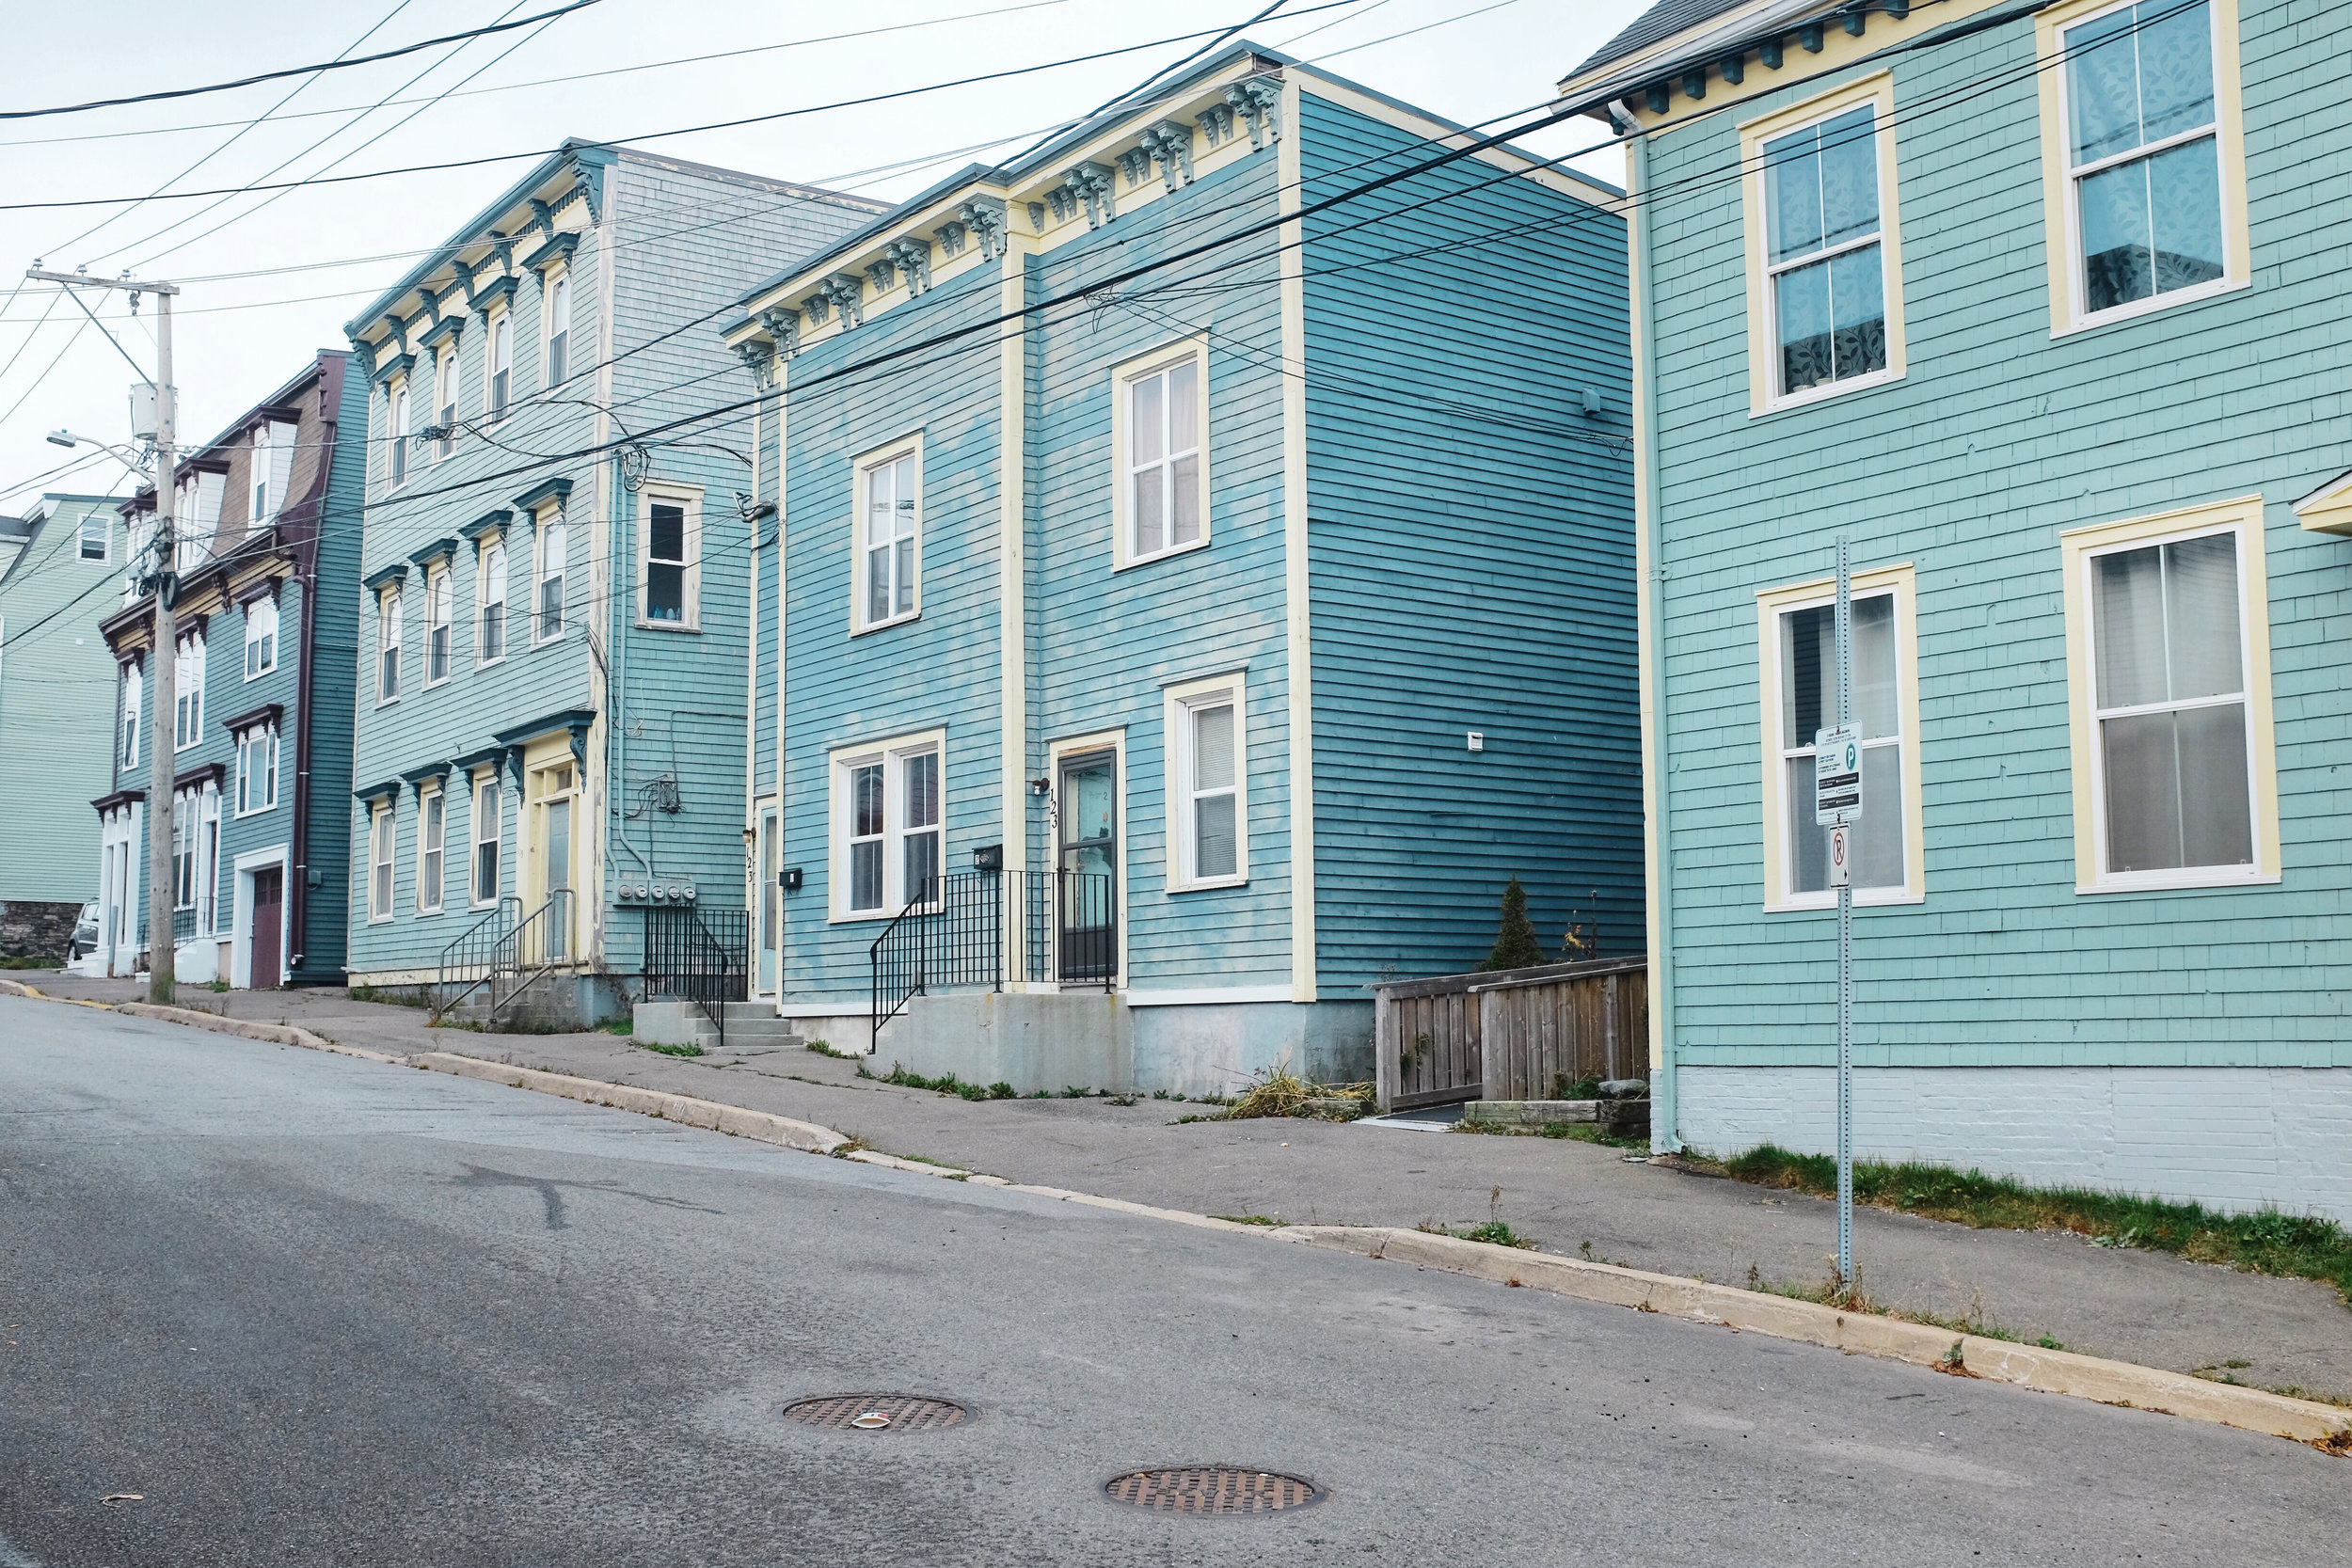 homes of saint john, new brunswick